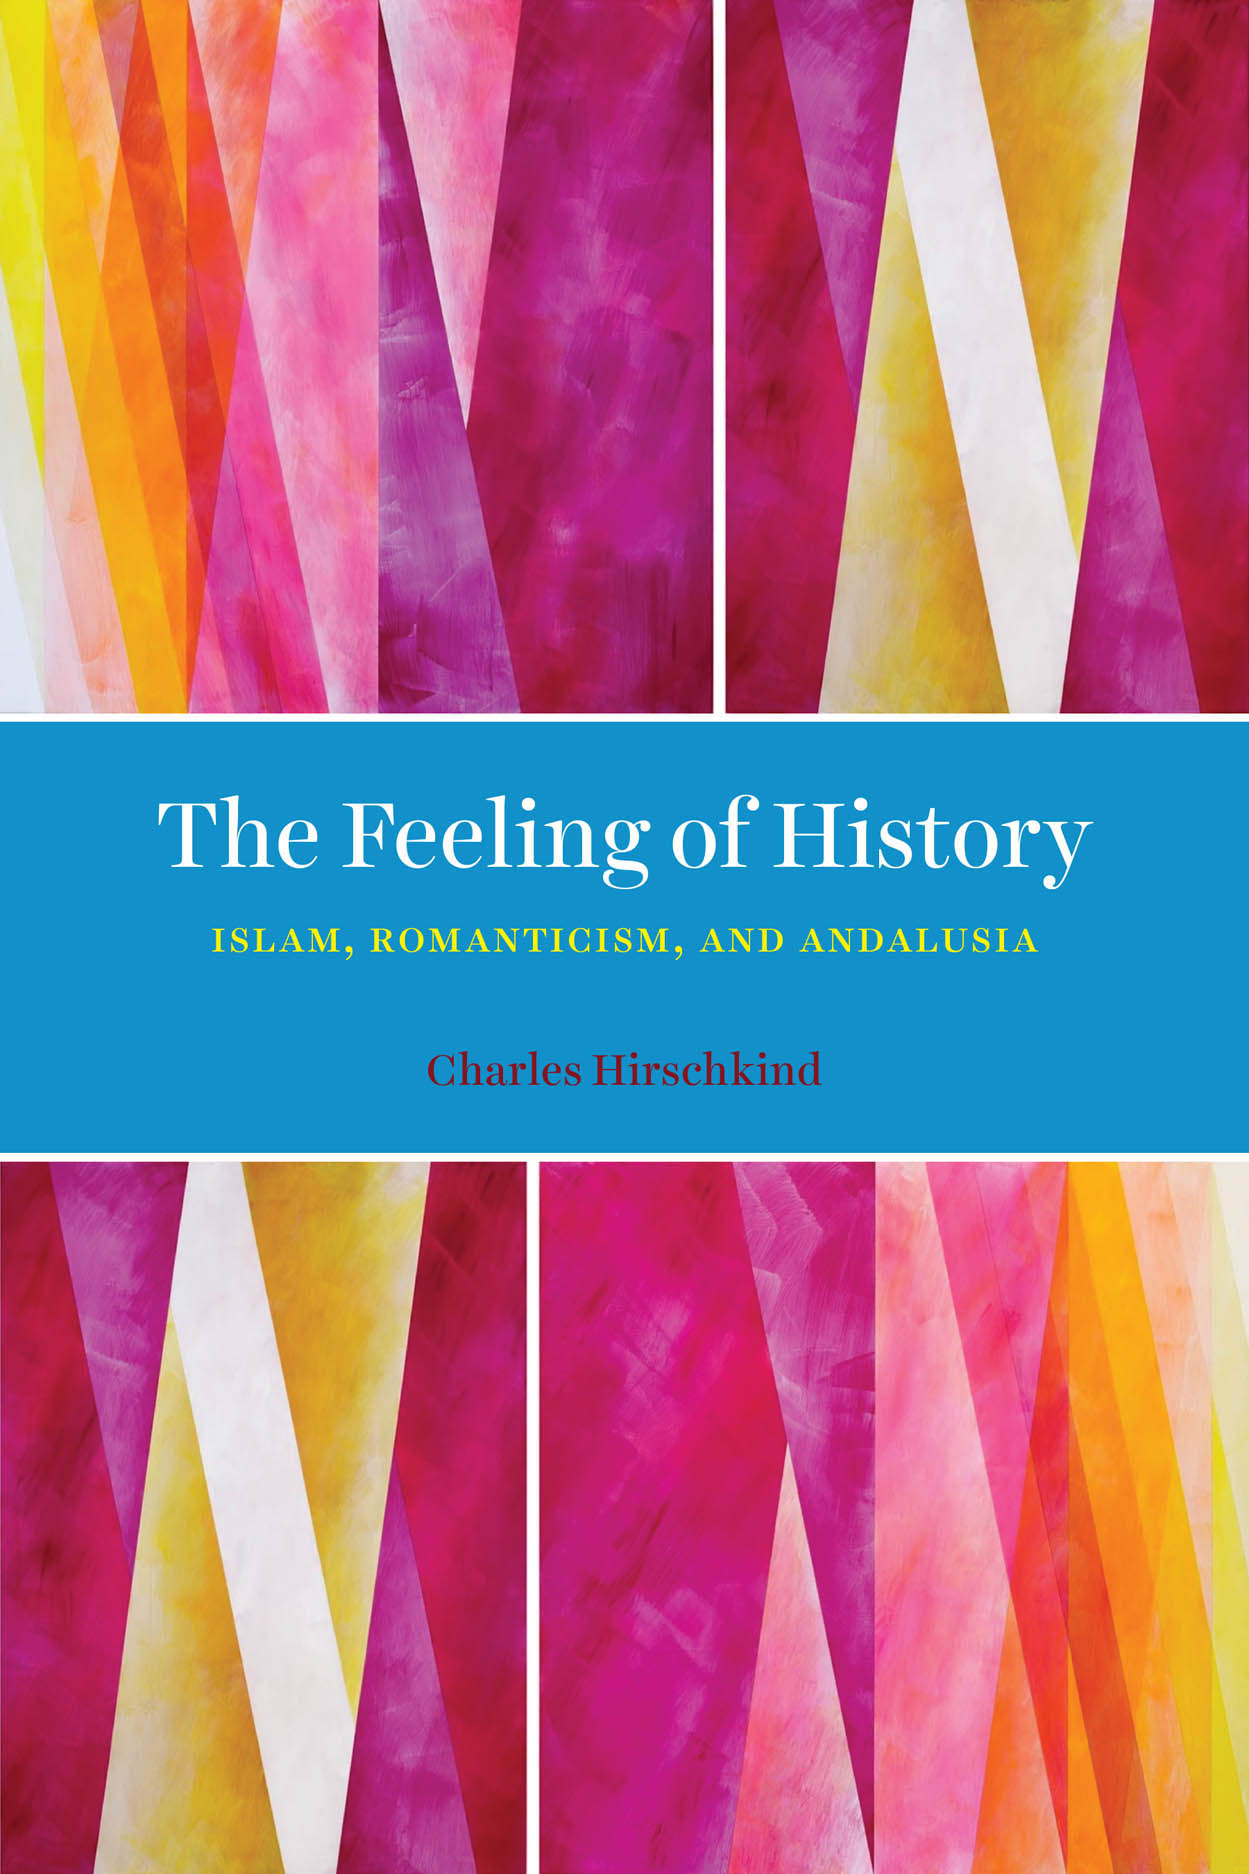 The Feeling of History: Islam, Romanticism, and Andalusia